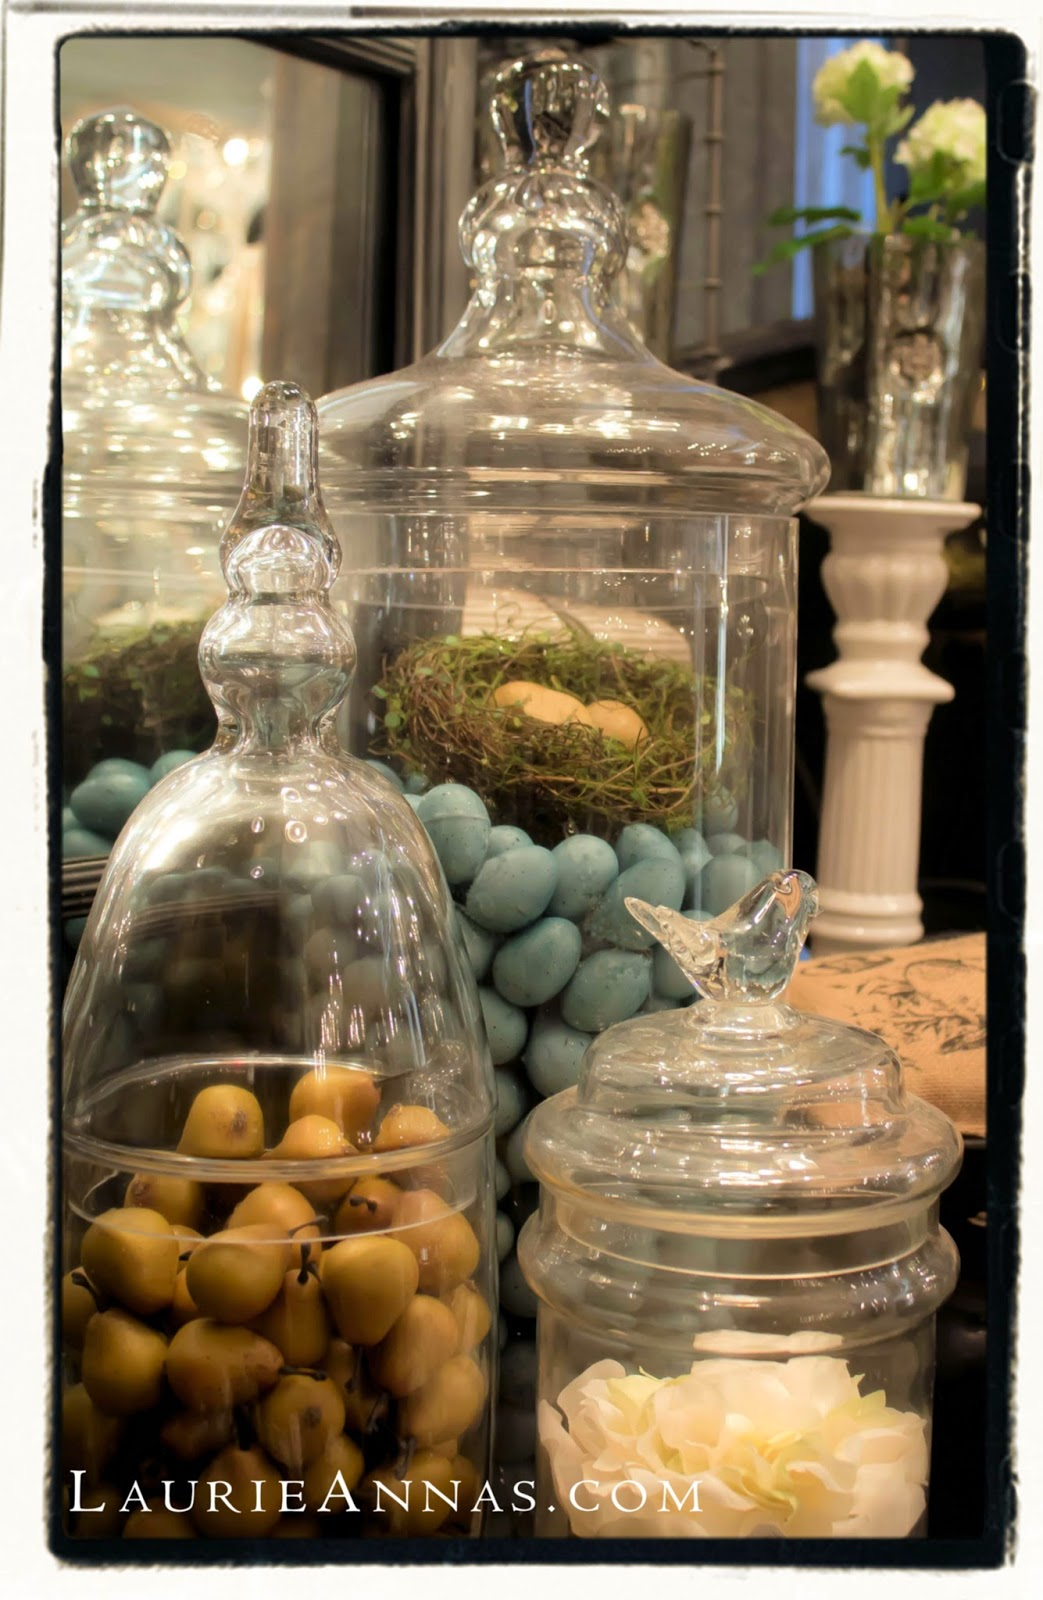 laurieanna 39 s vintage home decorating with cloches and glass jars. Black Bedroom Furniture Sets. Home Design Ideas